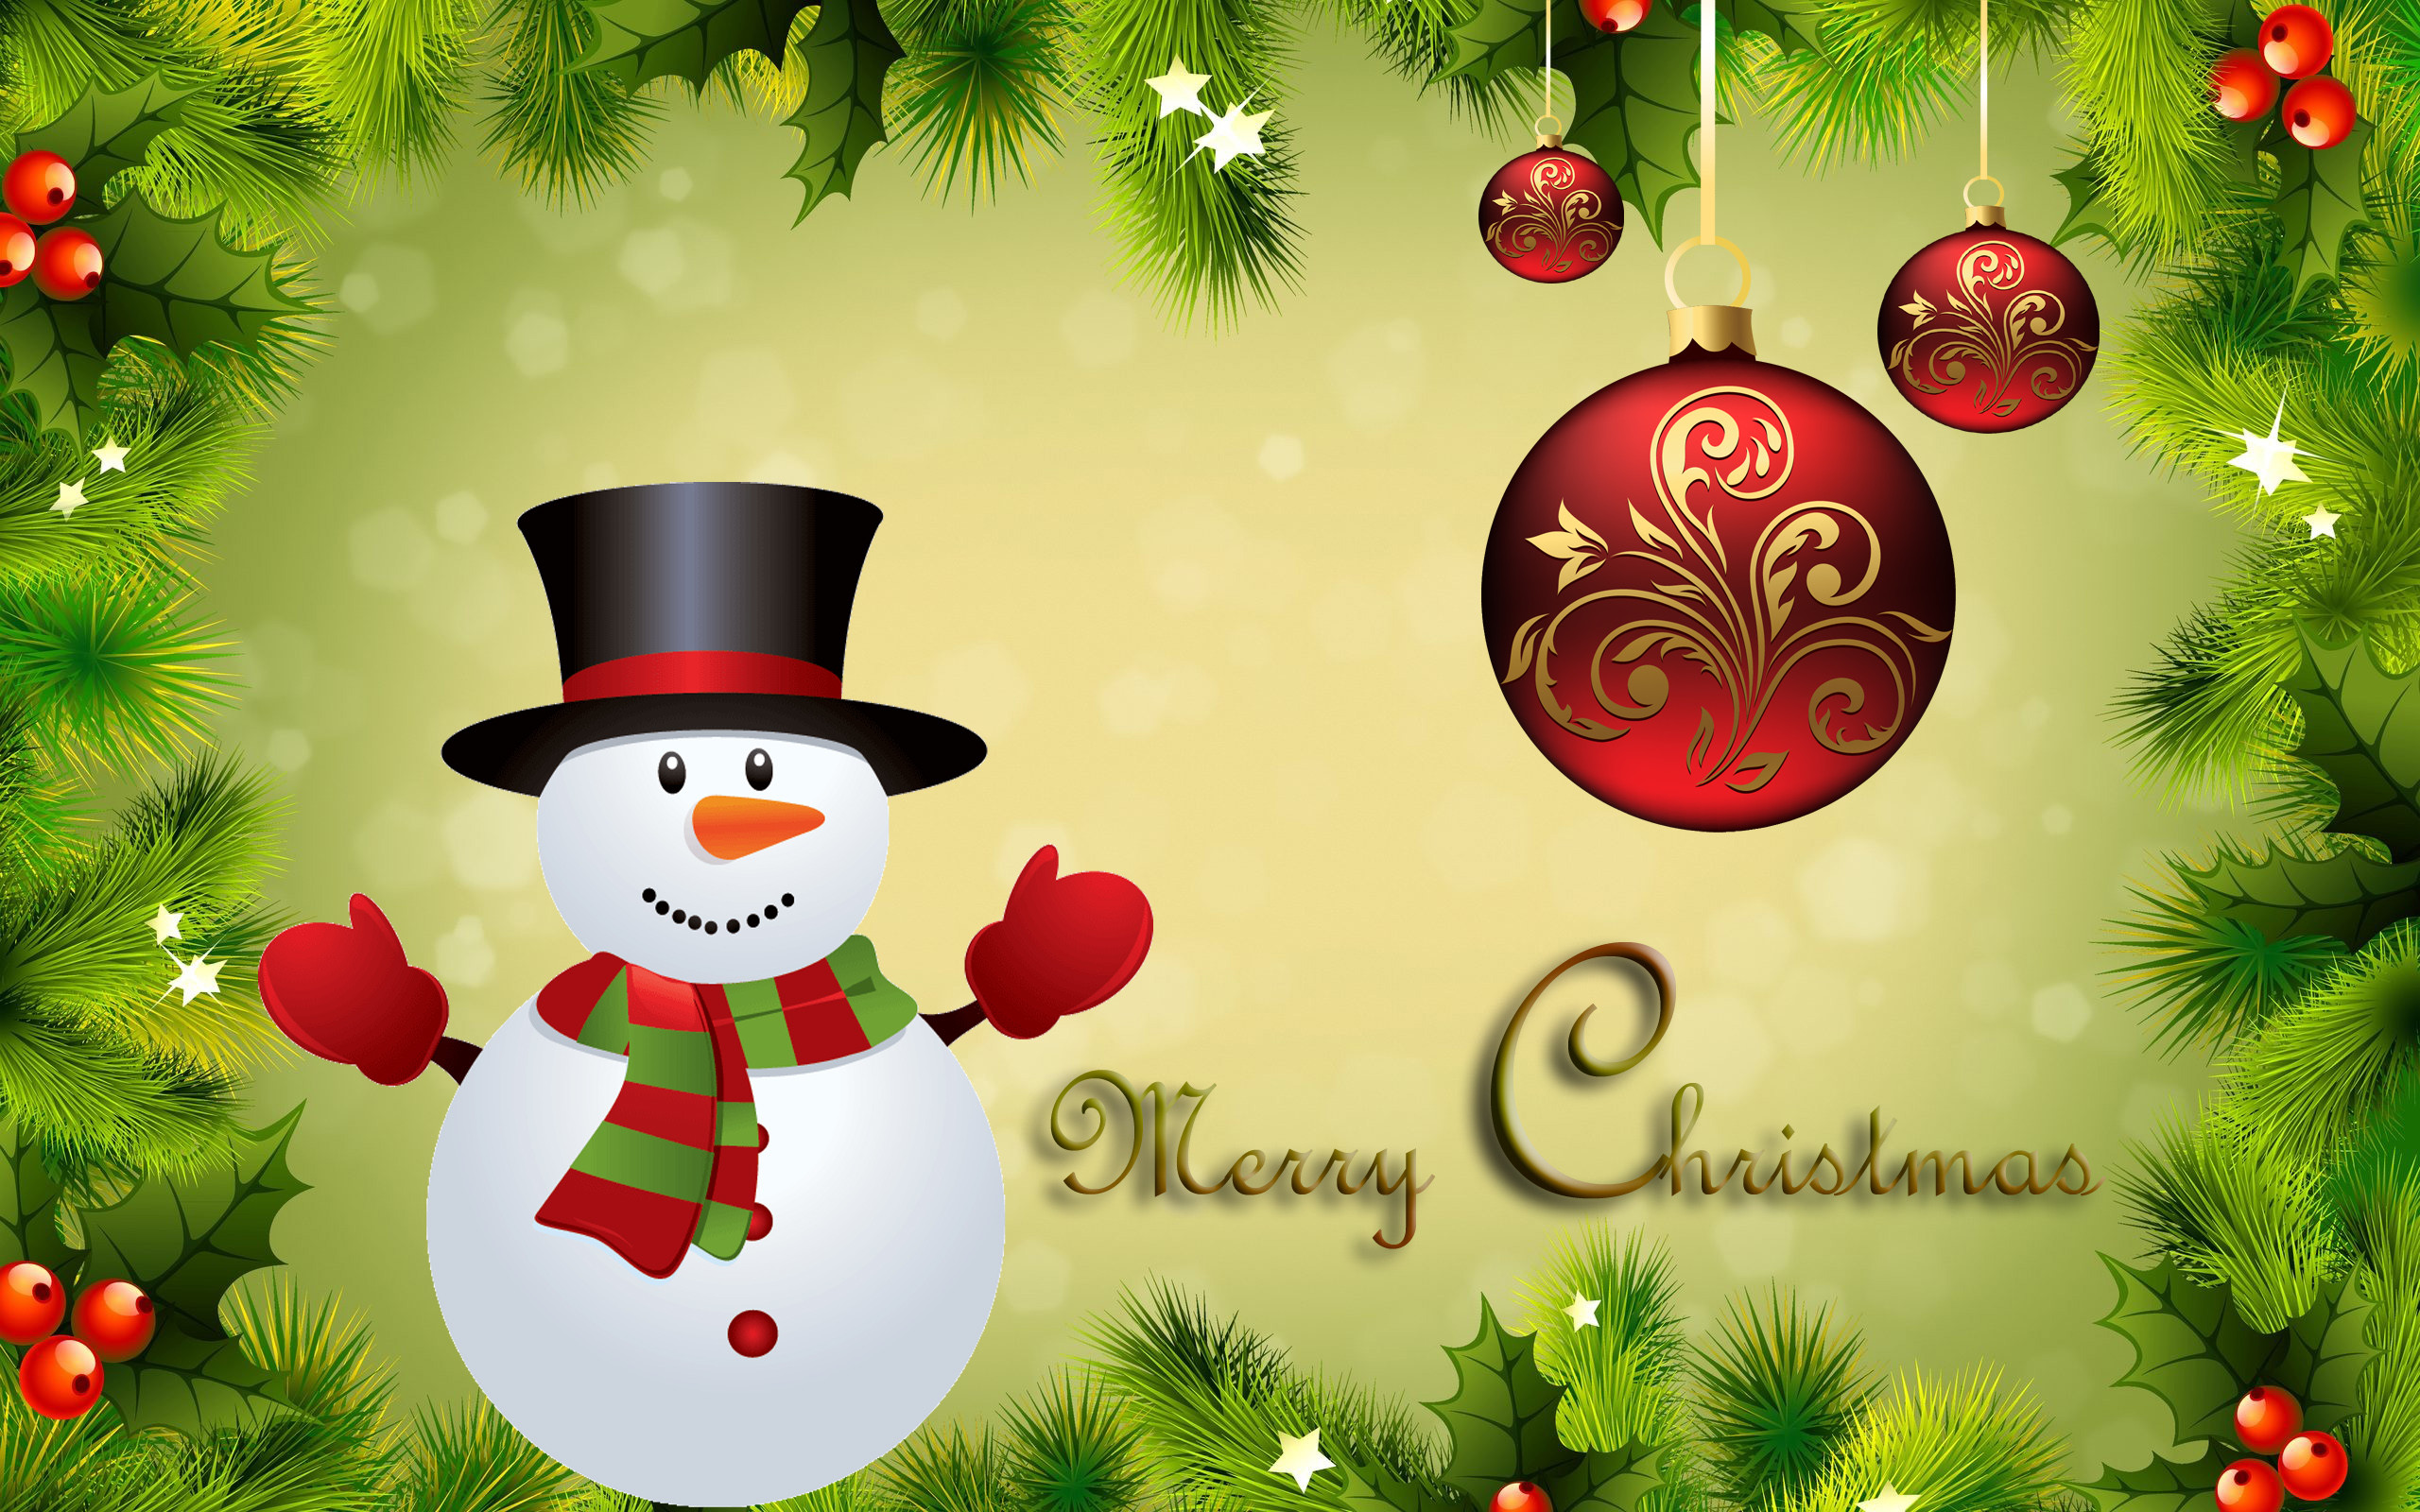 Free Christmas Wallpaper Downloads.Cute Merry Christmas Wallpaper 64 Images